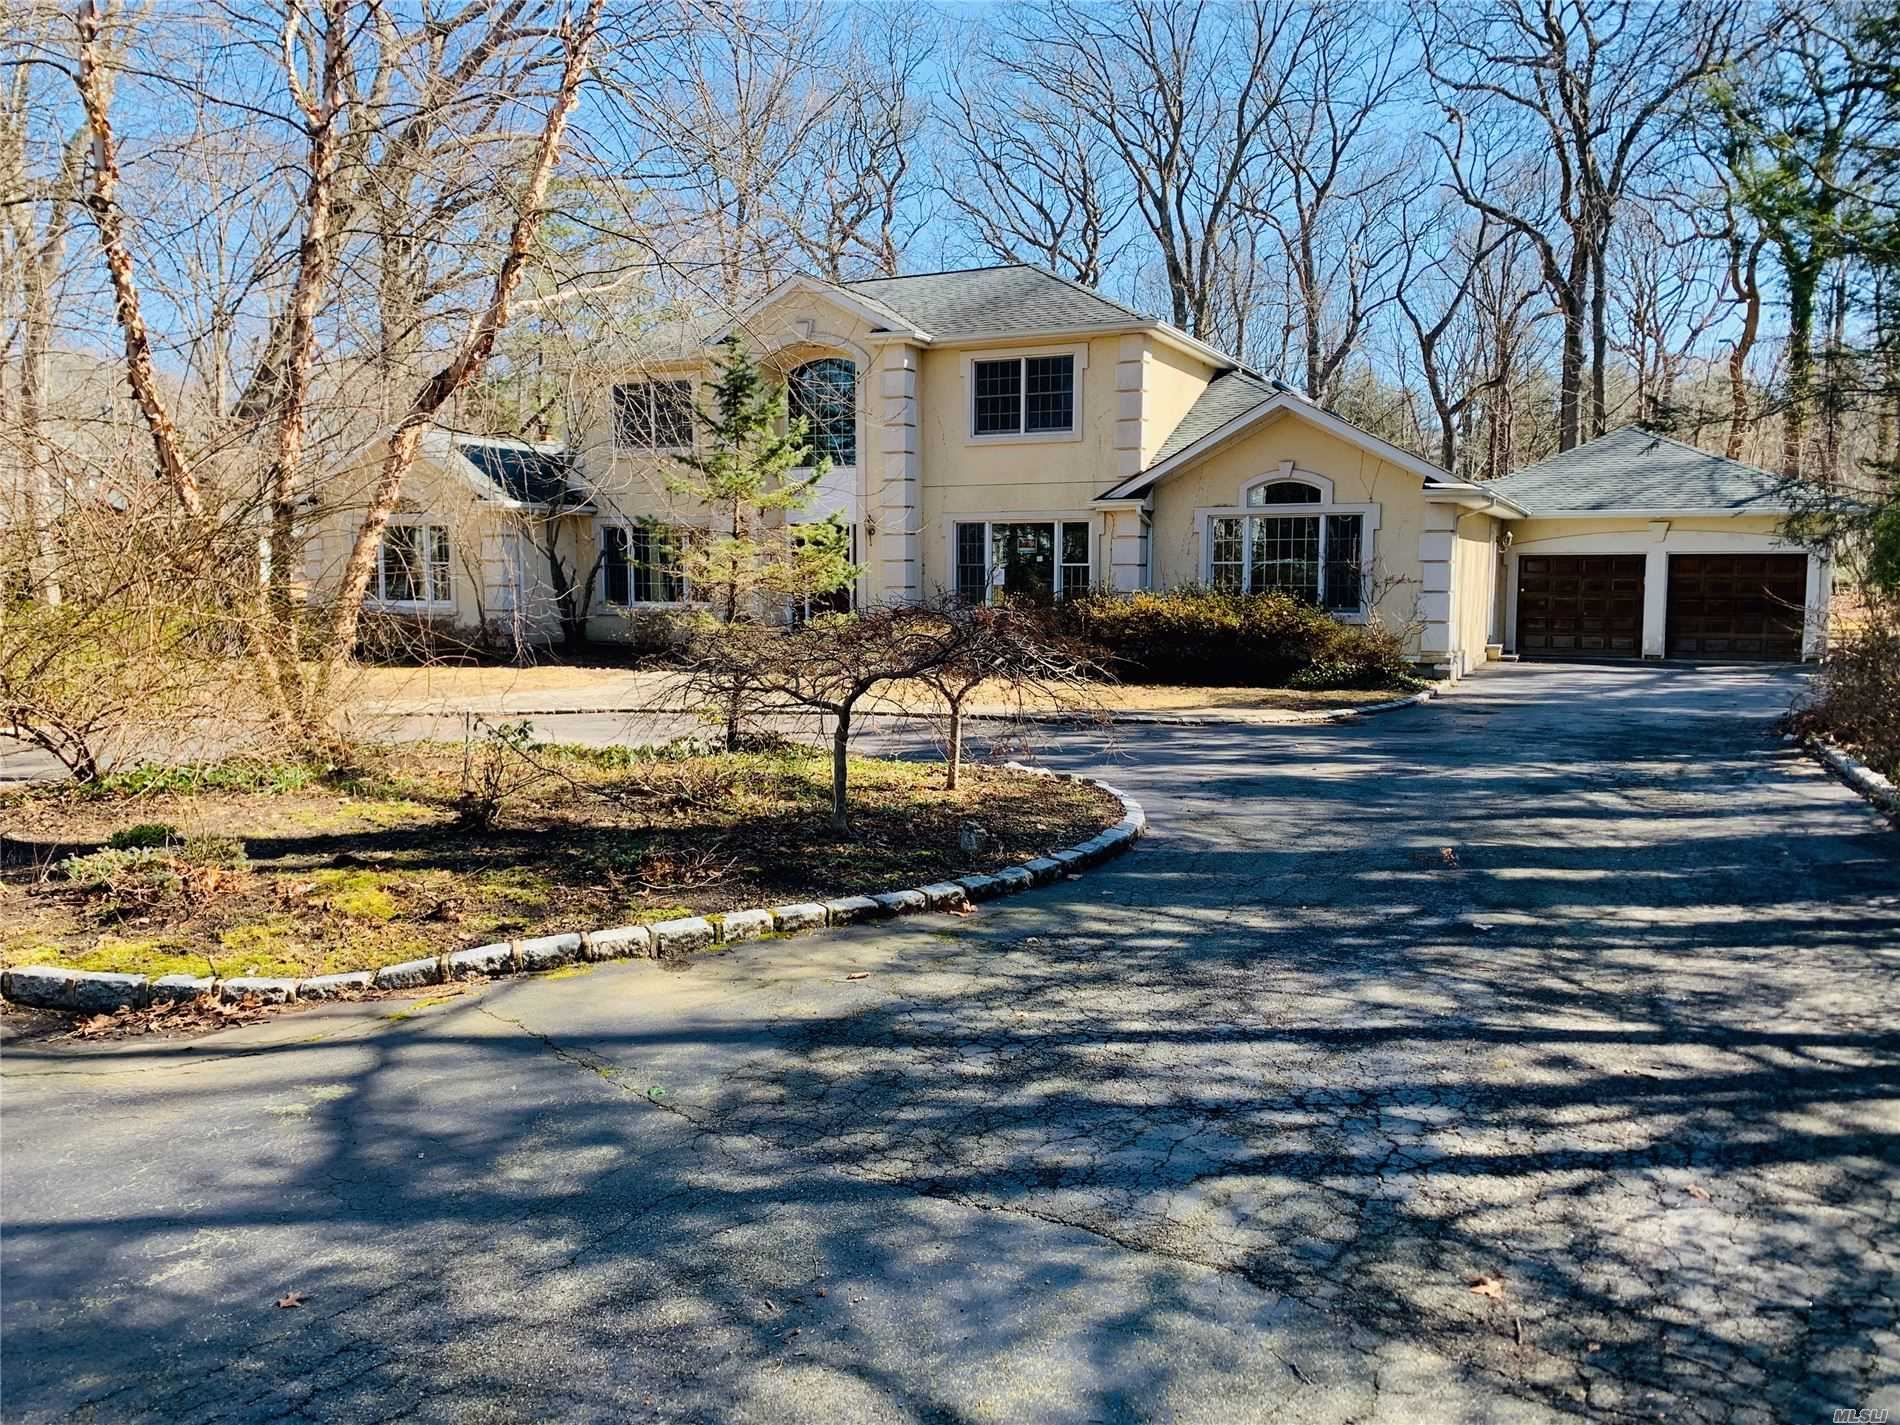 16 Tall Tree Court, Cold Spring Harbor, NY 11724 - MLS#: 3205235